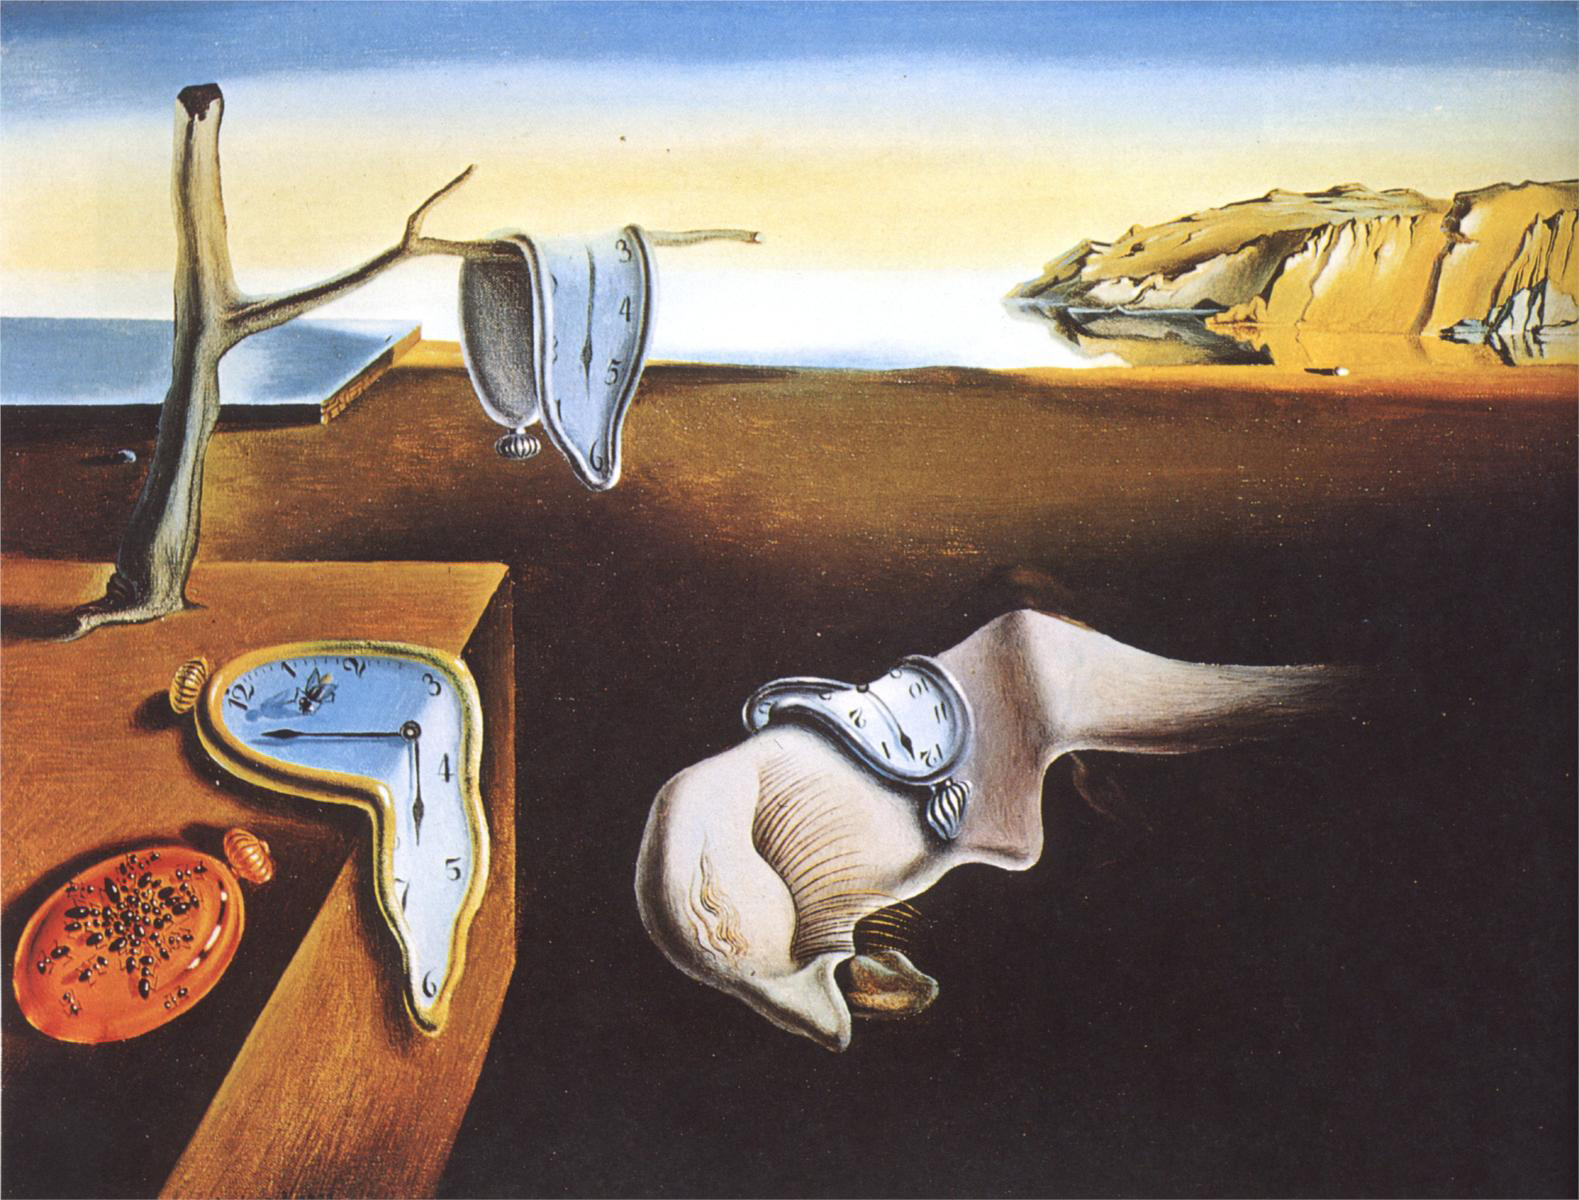 The iconic painting, by Salvador Dali, of melting clocks is depicted in this image.